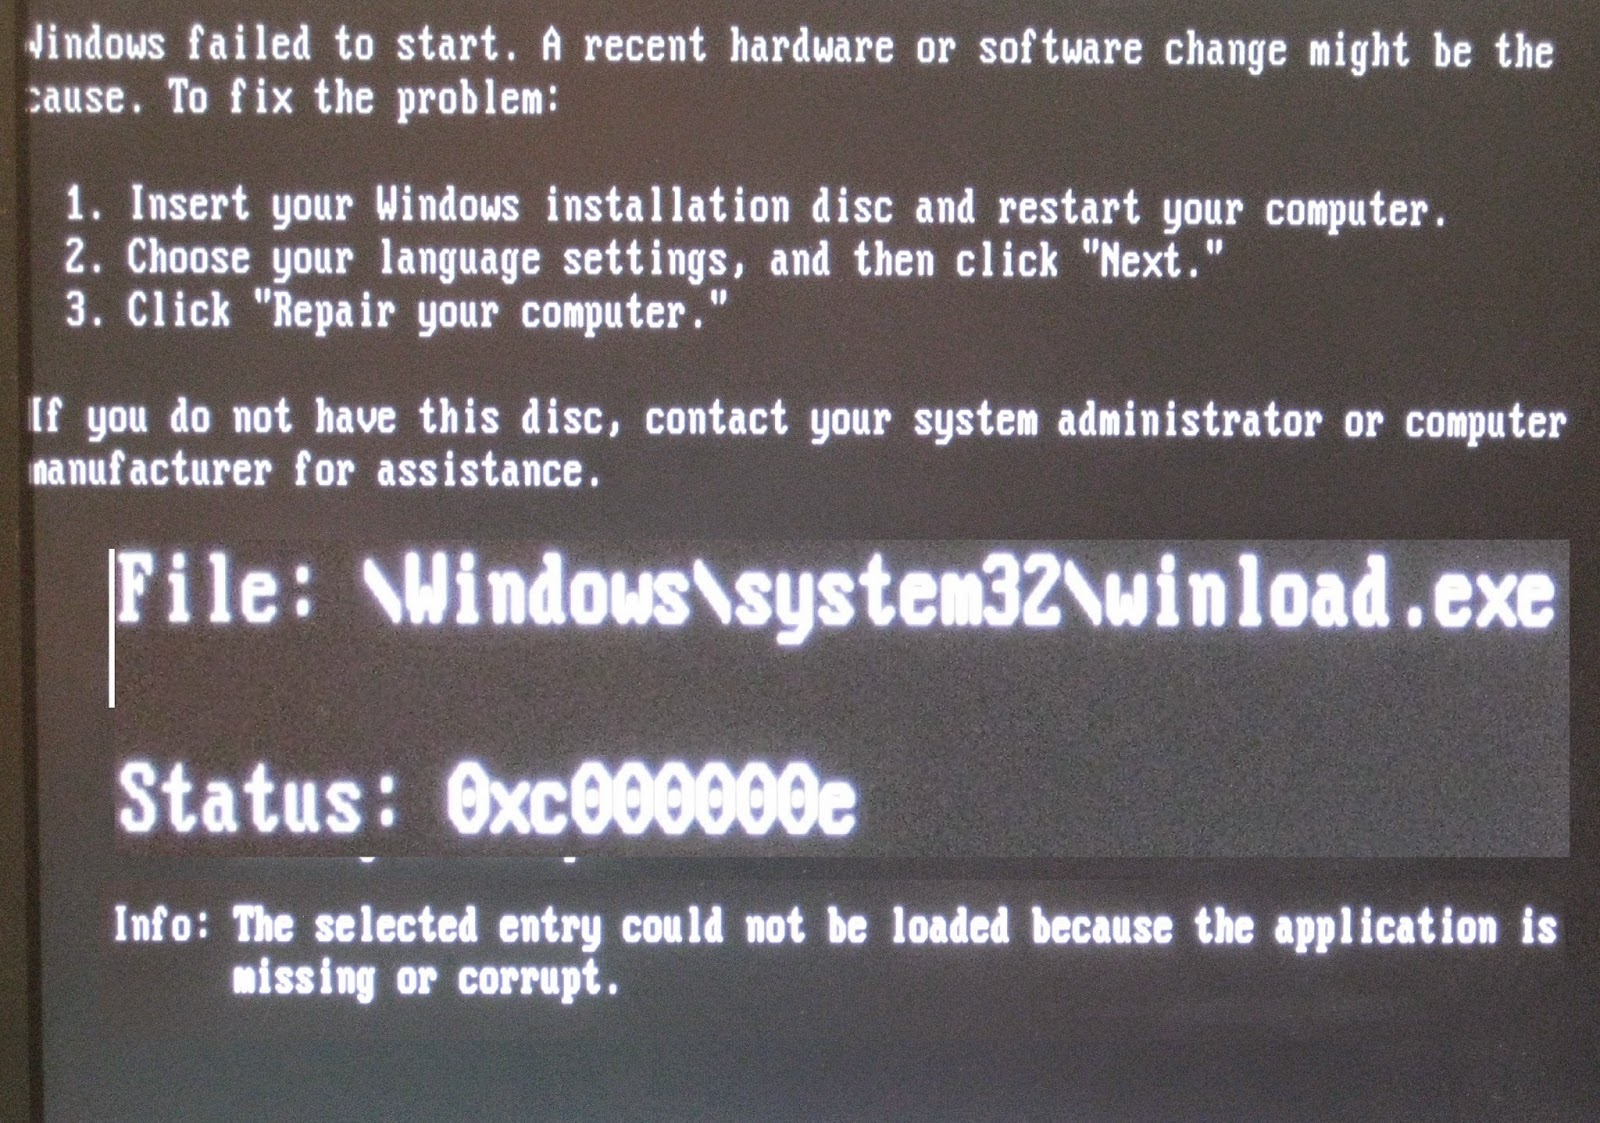 file windows system32 winload.exe windows 10